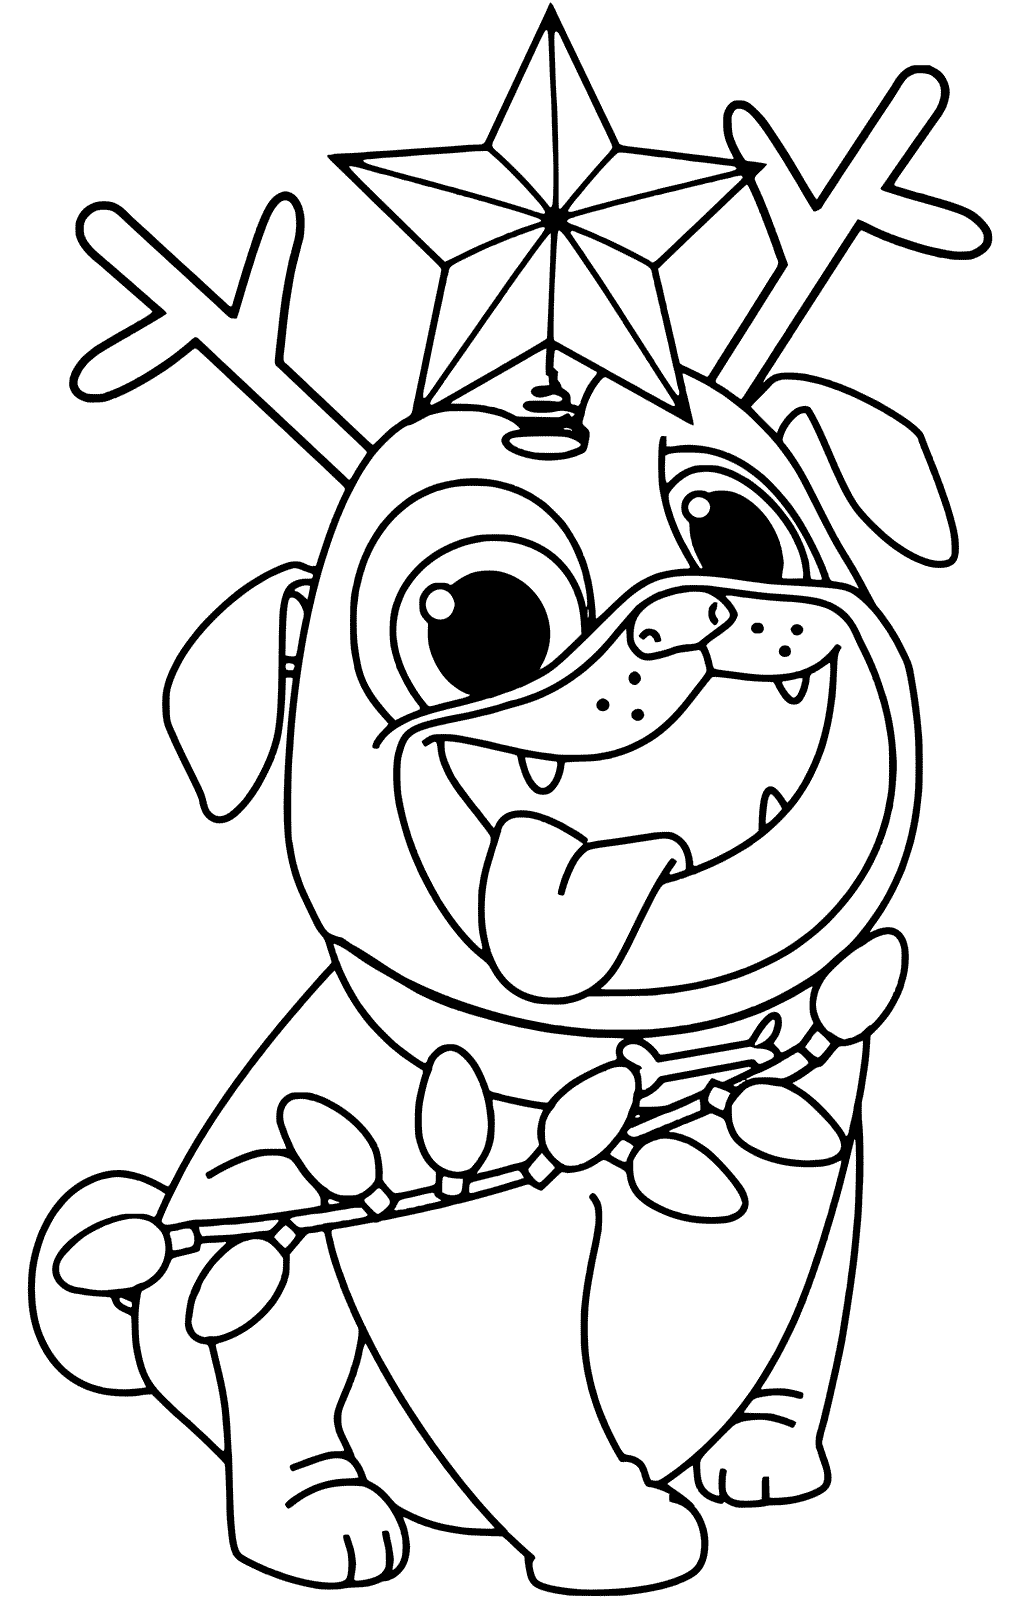 dogs pictures to print pug dog coloring pages coloring home to pictures print dogs